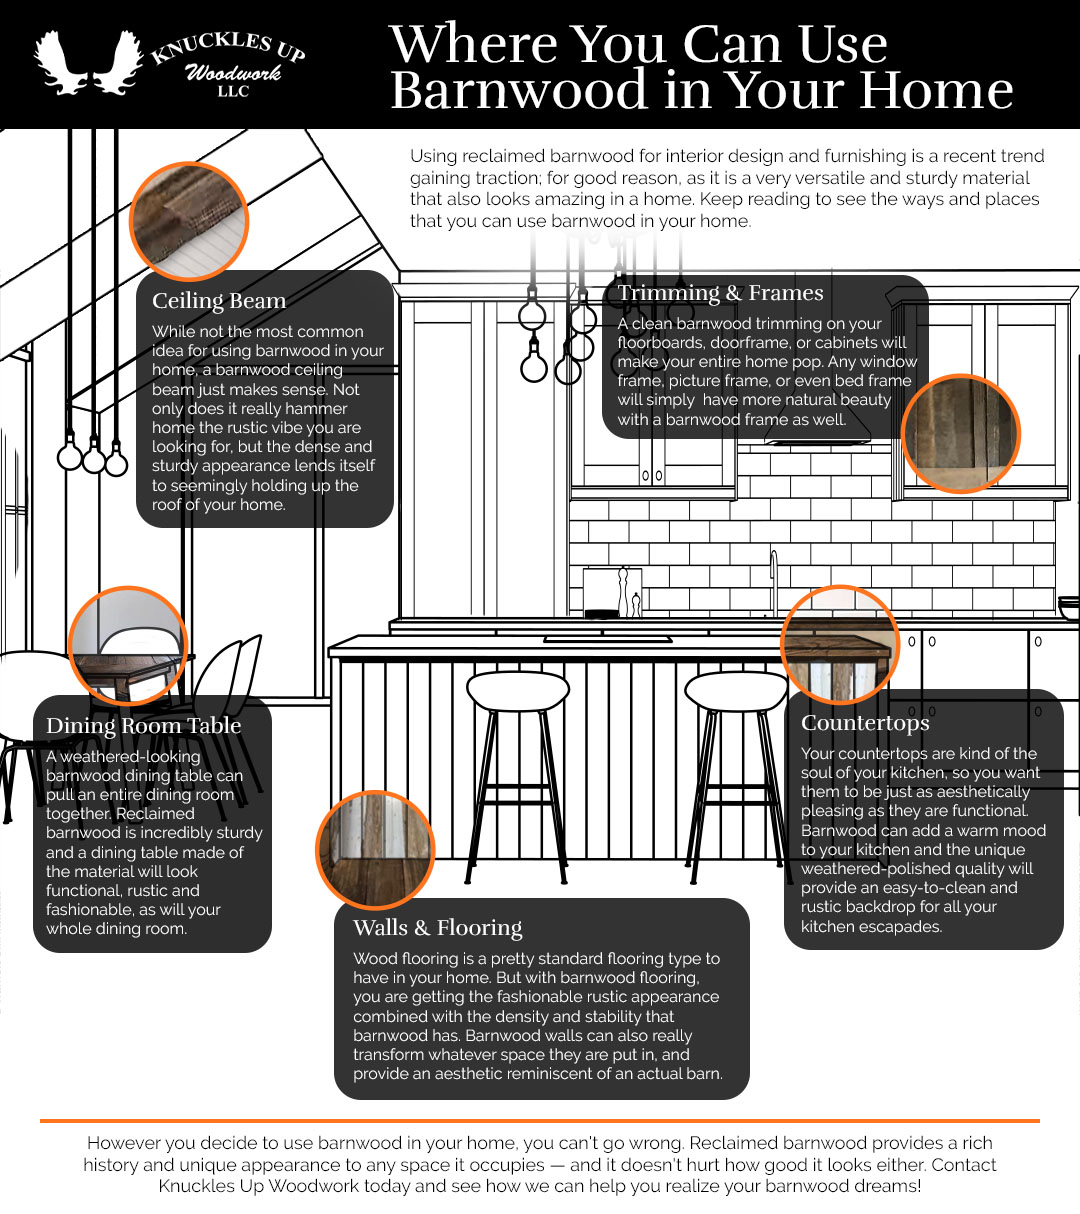 Infographic showing where barnwood can be used in the house